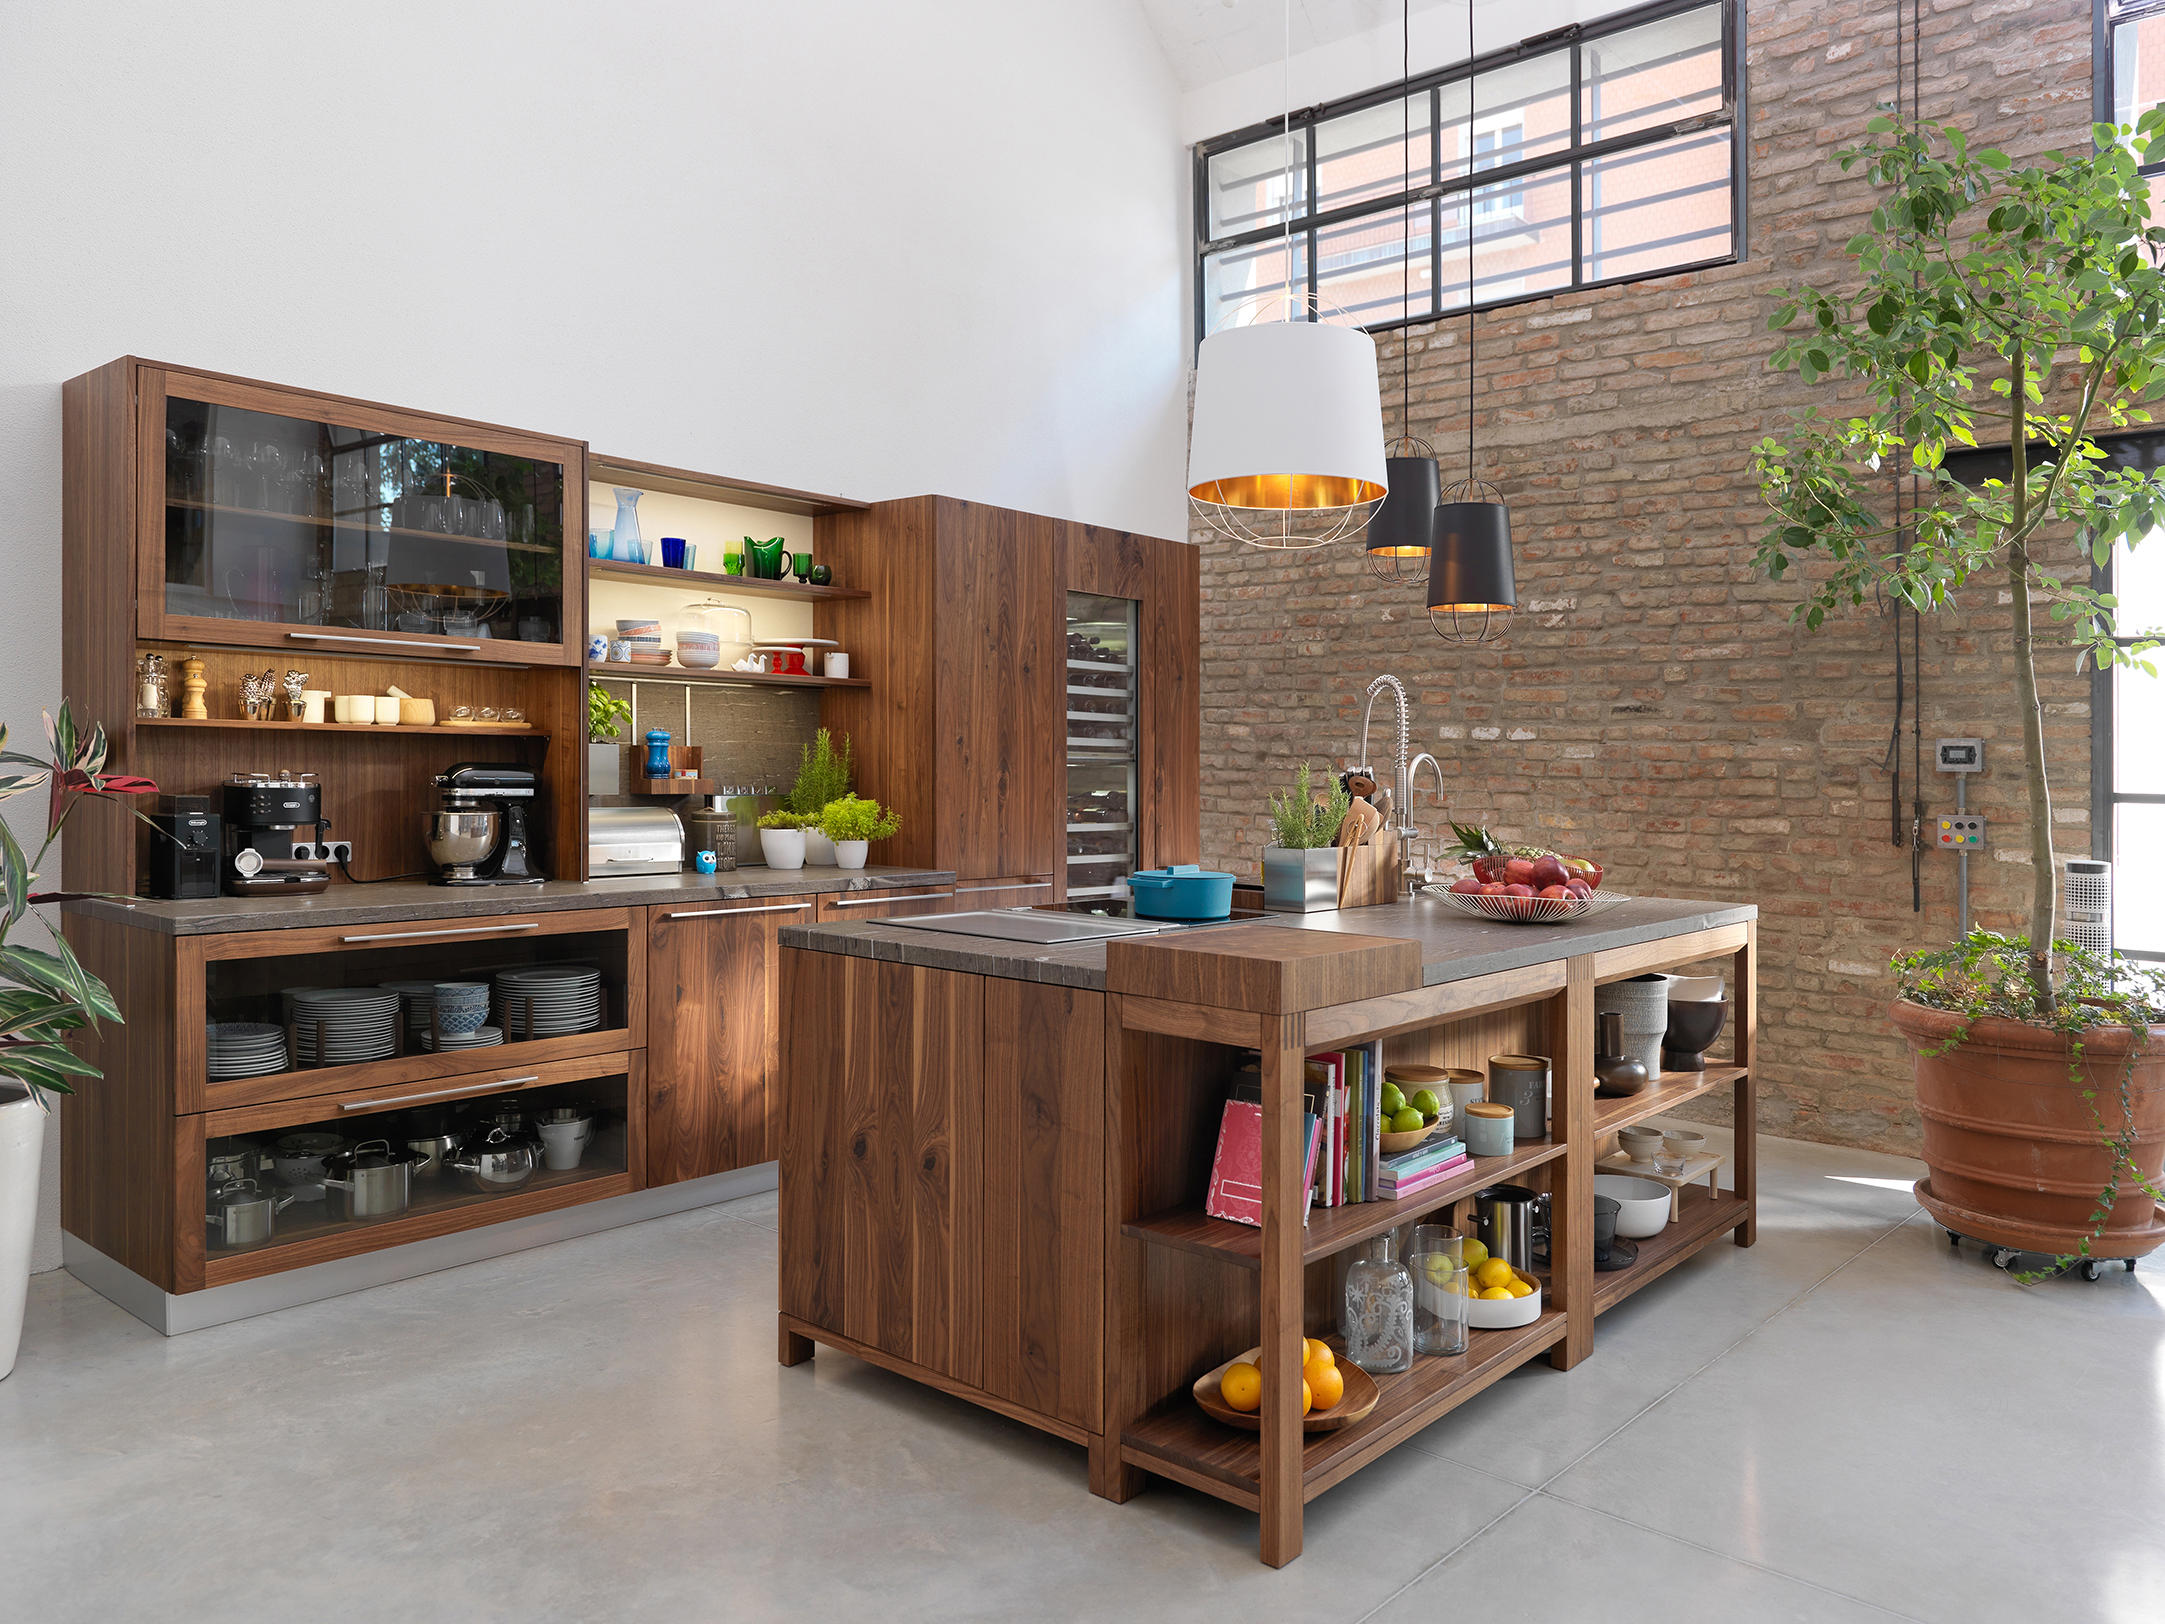 Design Loft Kitchens loft kitchen fitted kitchens from team 7 architonic by kitchens